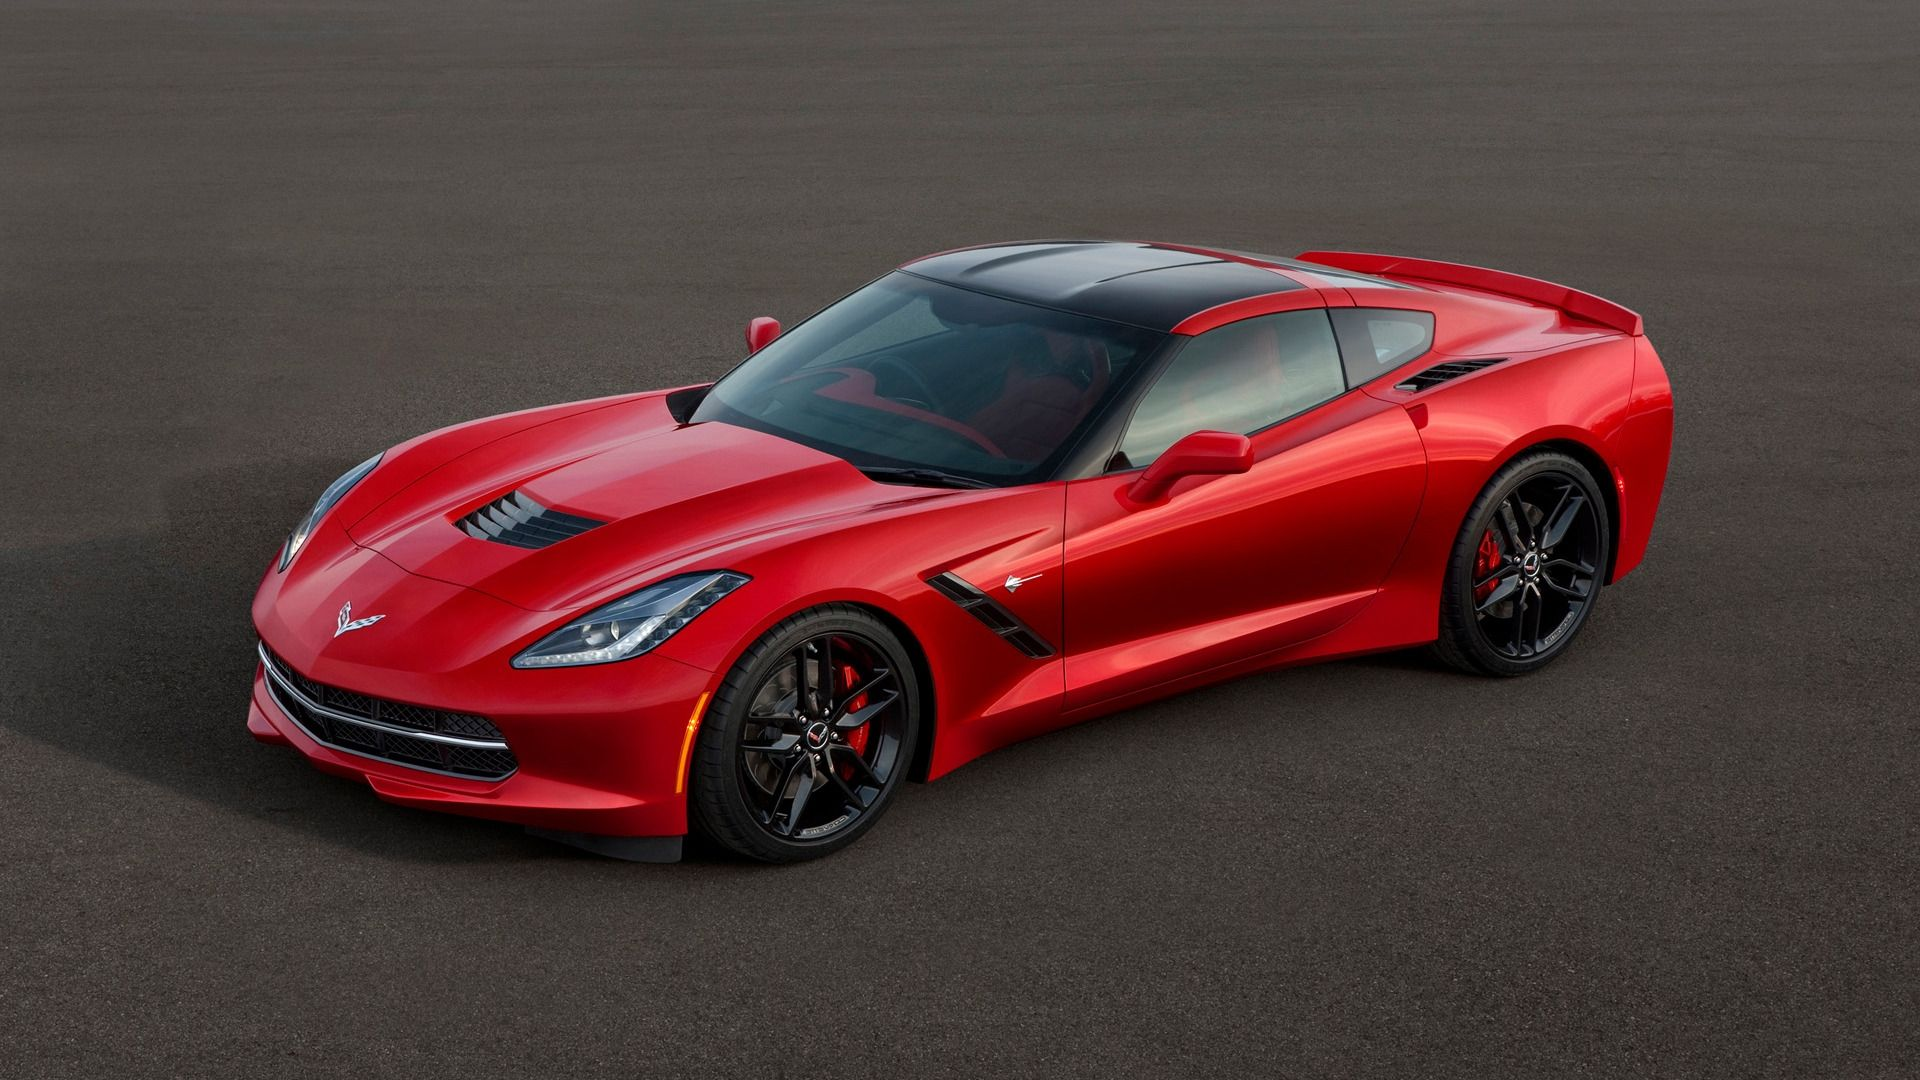 2014 Chevrolet Corvette C7 Stingray Wallpapers